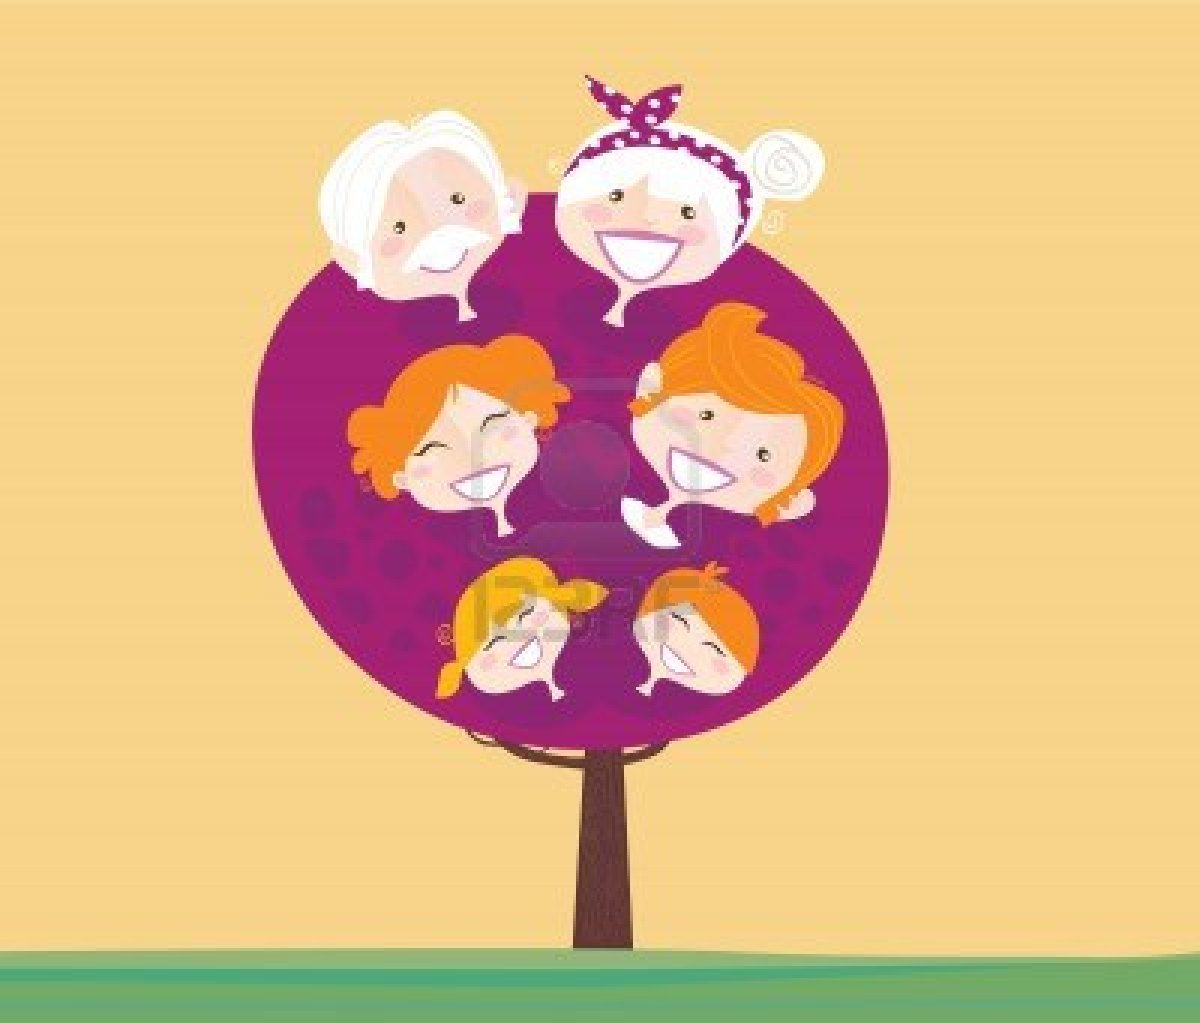 5835325-big-family-generation-tree-family-relationship-tree-grandmother-grandfather-mother-father-and-childr.jpg